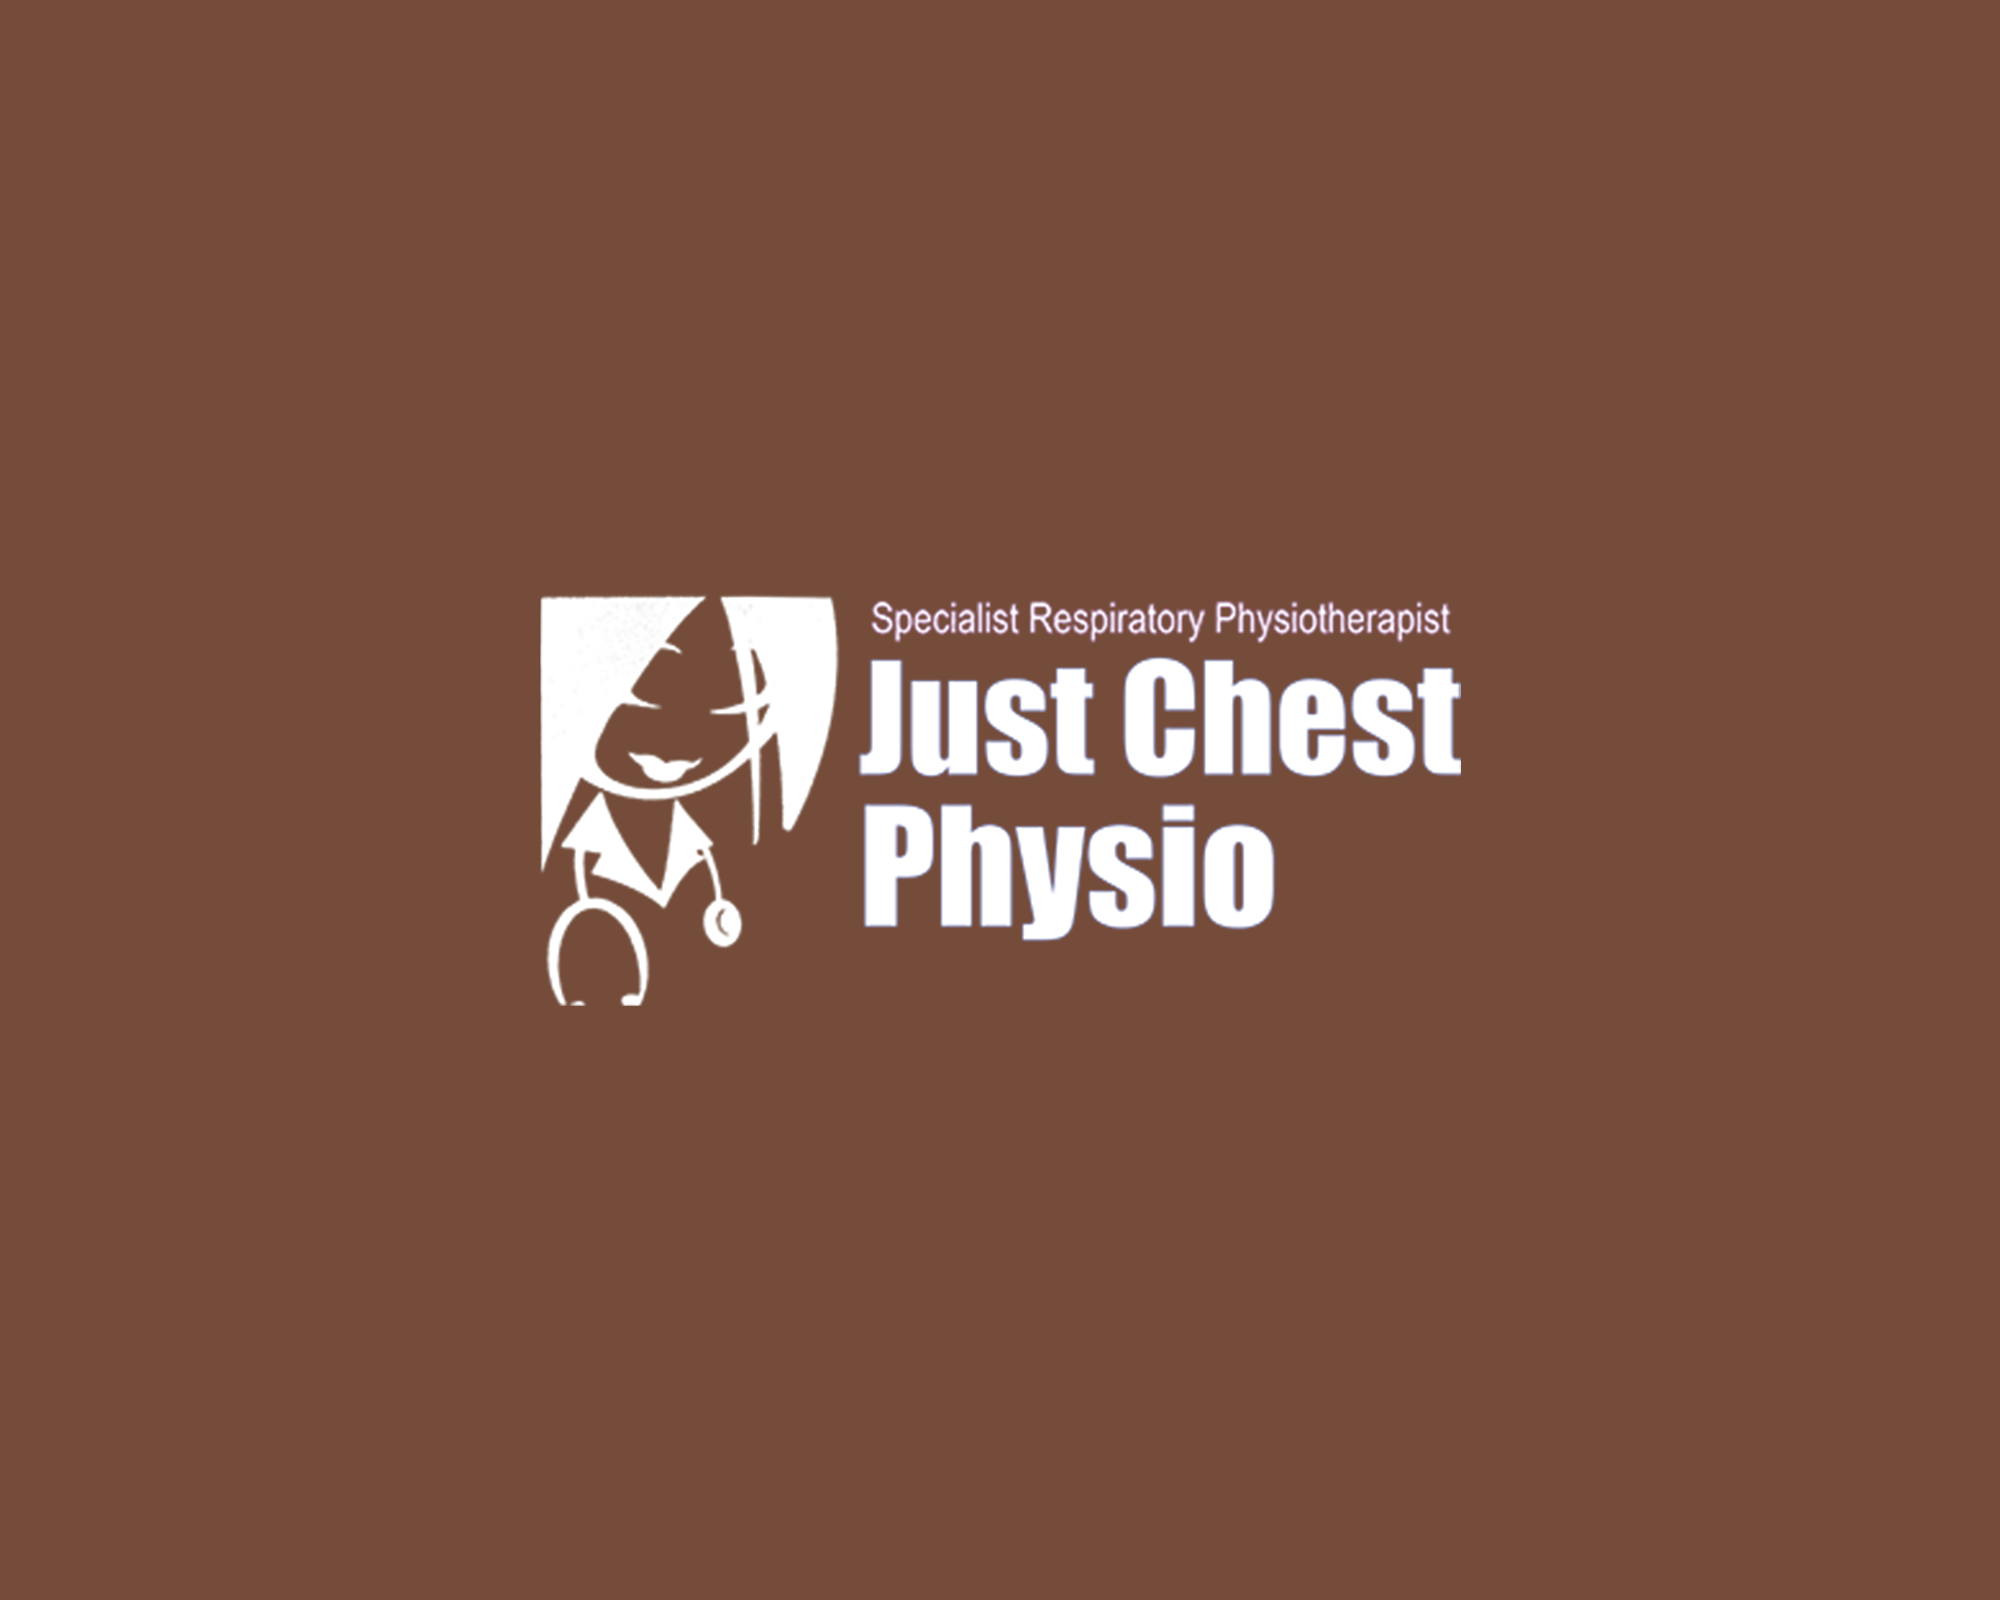 just chest physio Logo